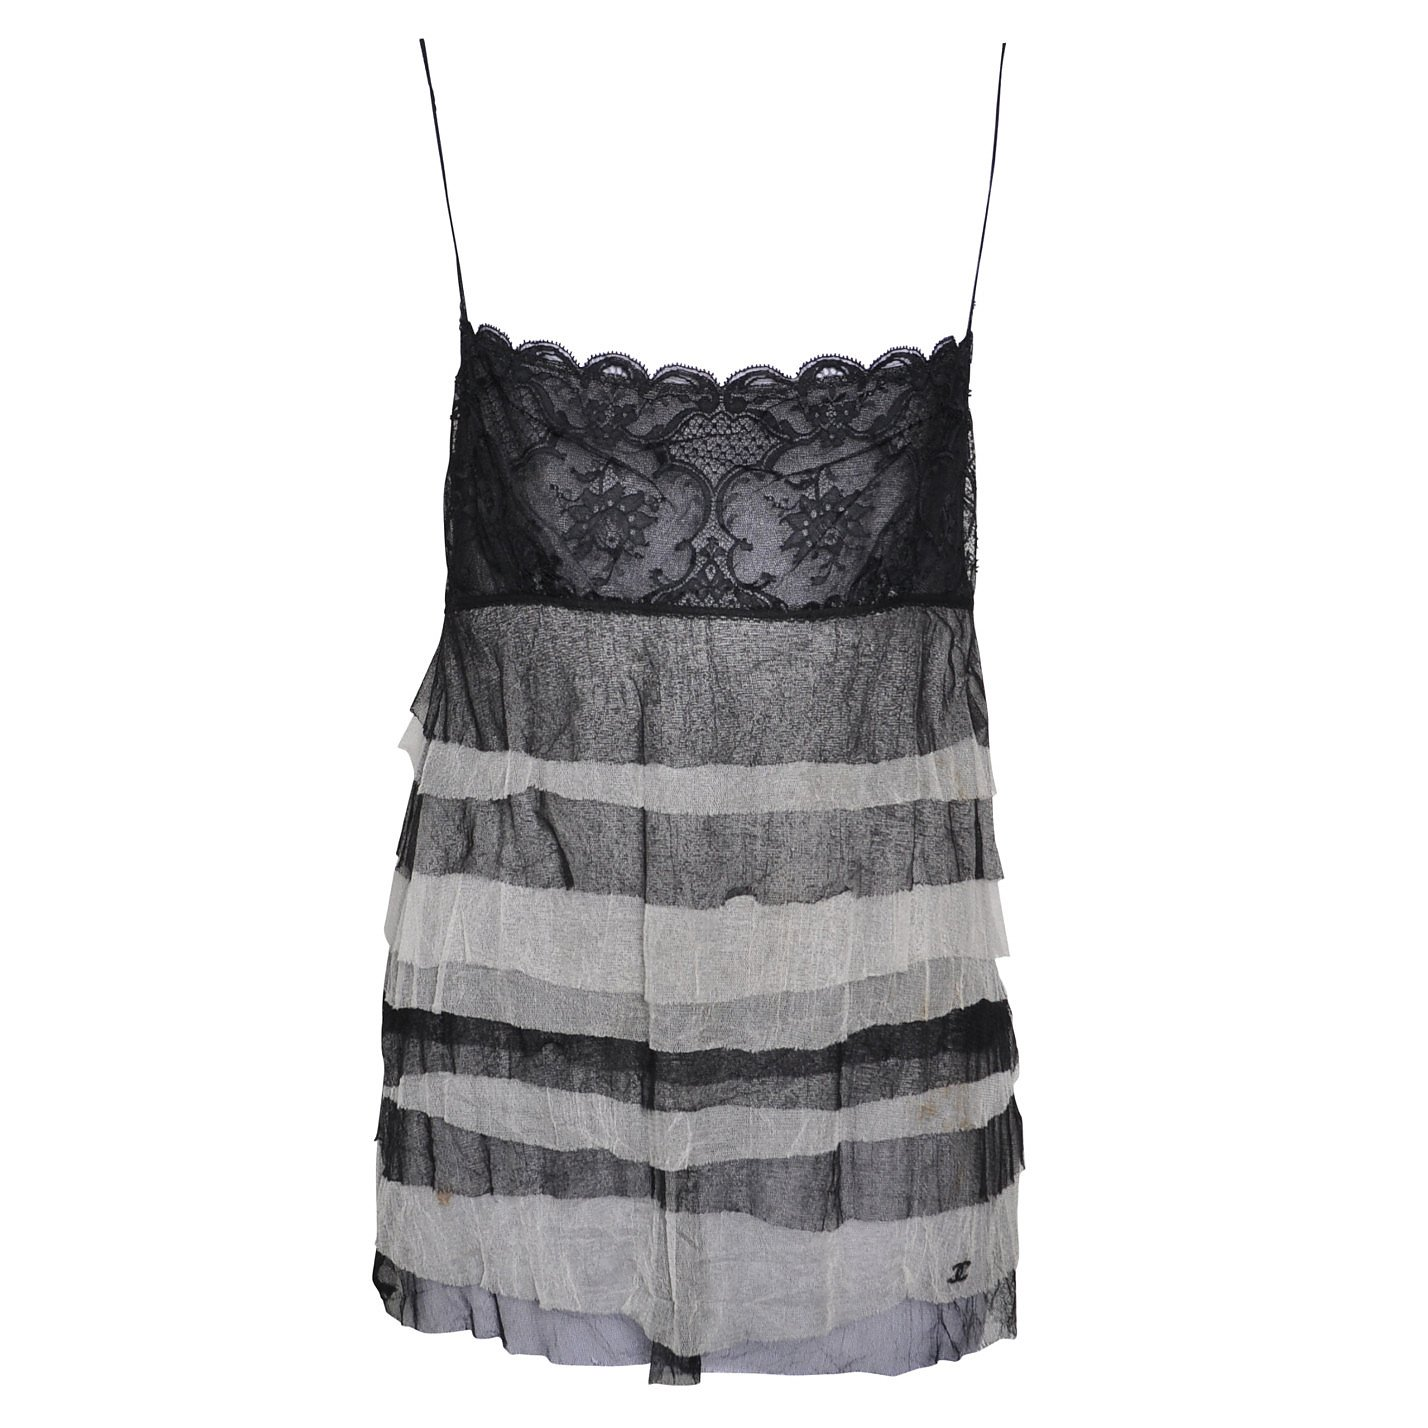 CHANEL Tiered Lace-Trimmed Camisole